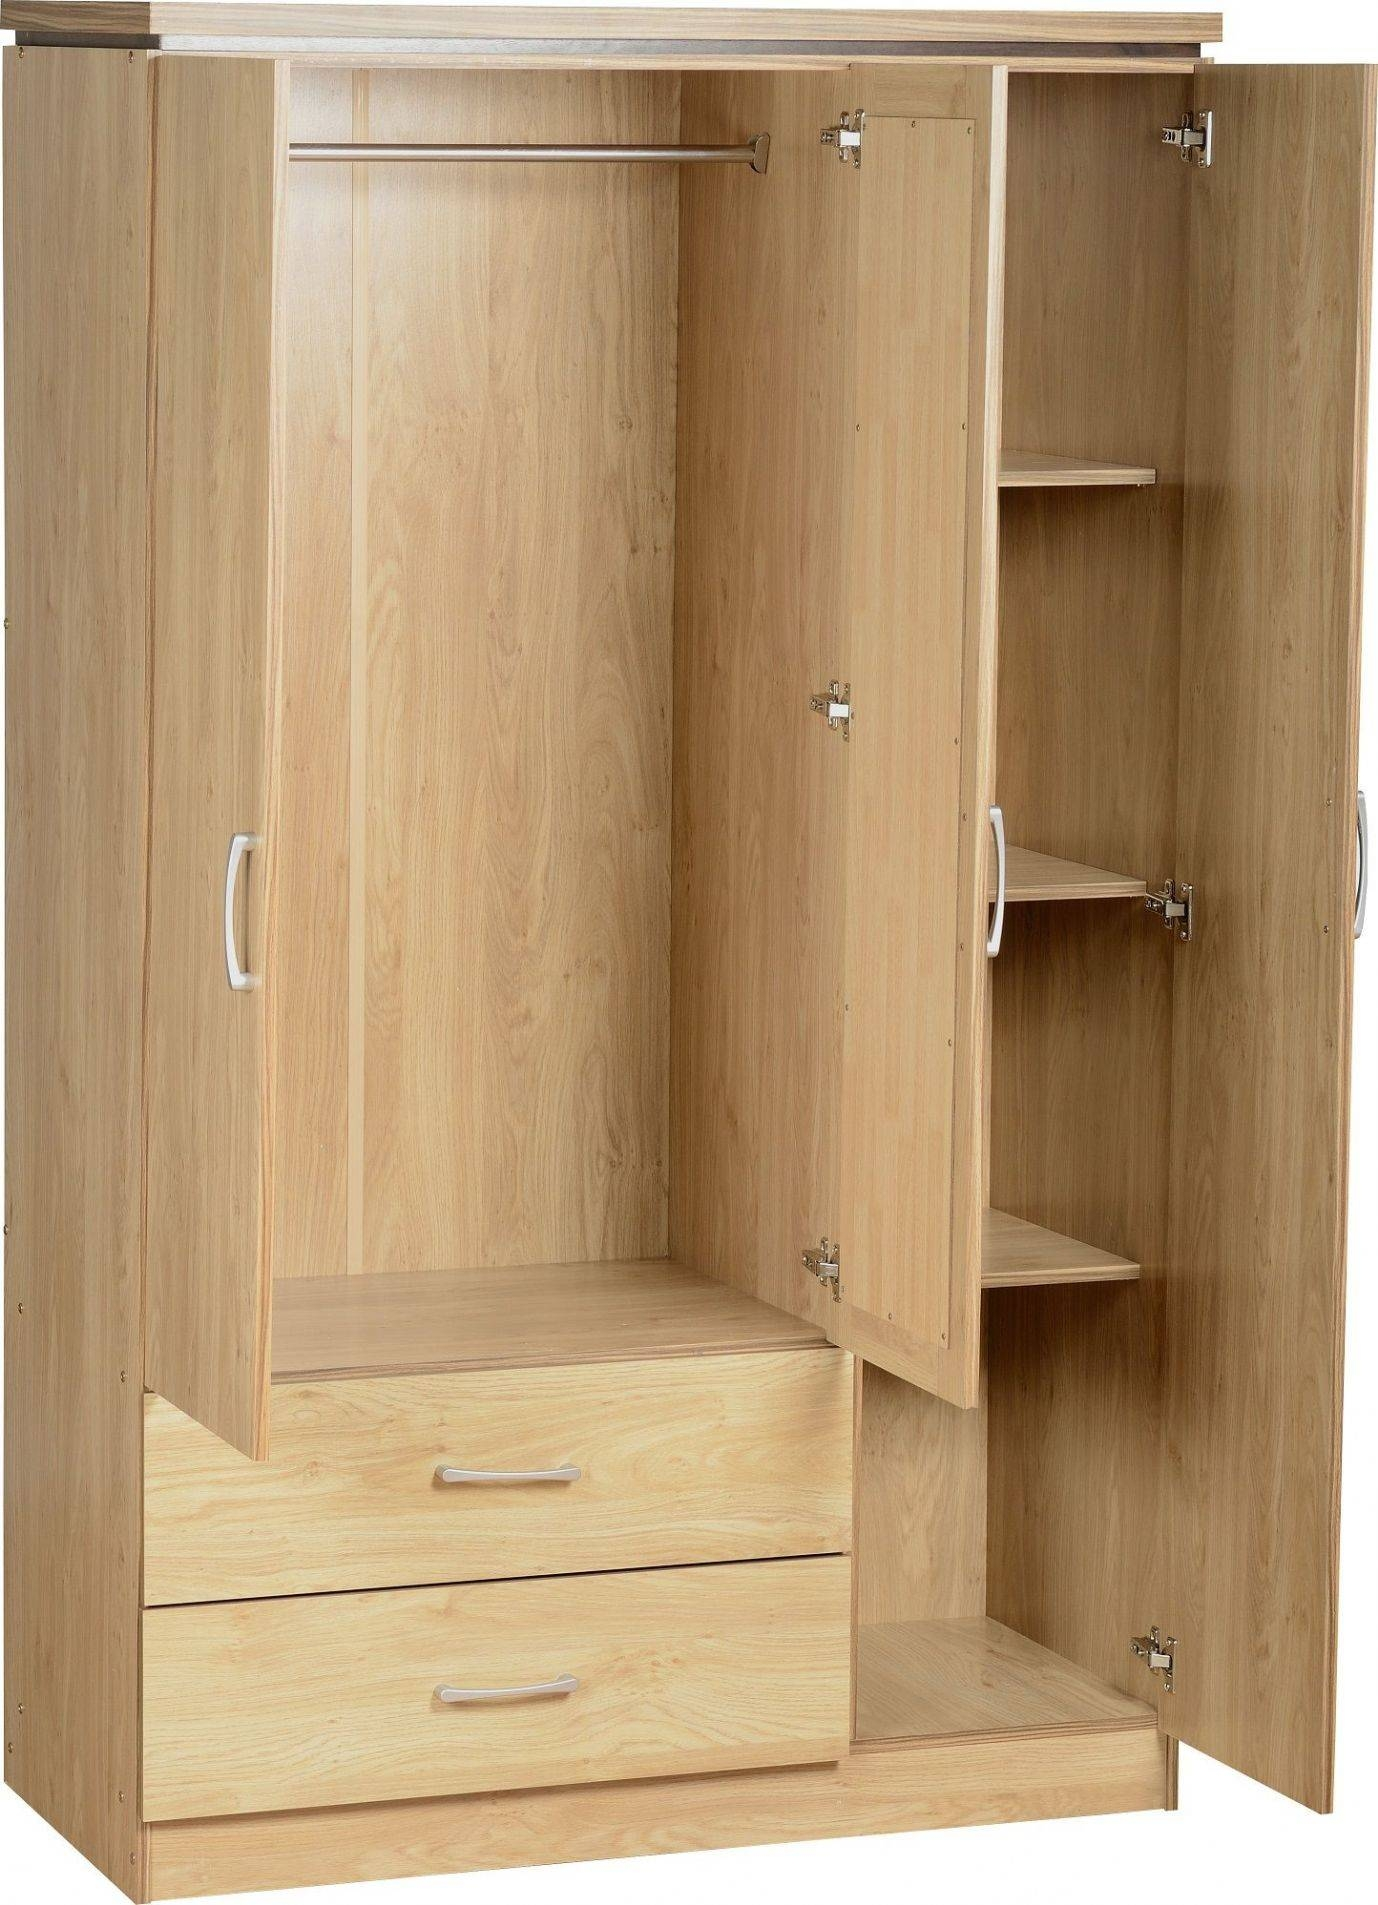 Wardrobes With Shelves, Ca Baumhaus Amelie Oak Childrens Kids Throughout Wardrobe With Drawers And Shelves (View 9 of 30)